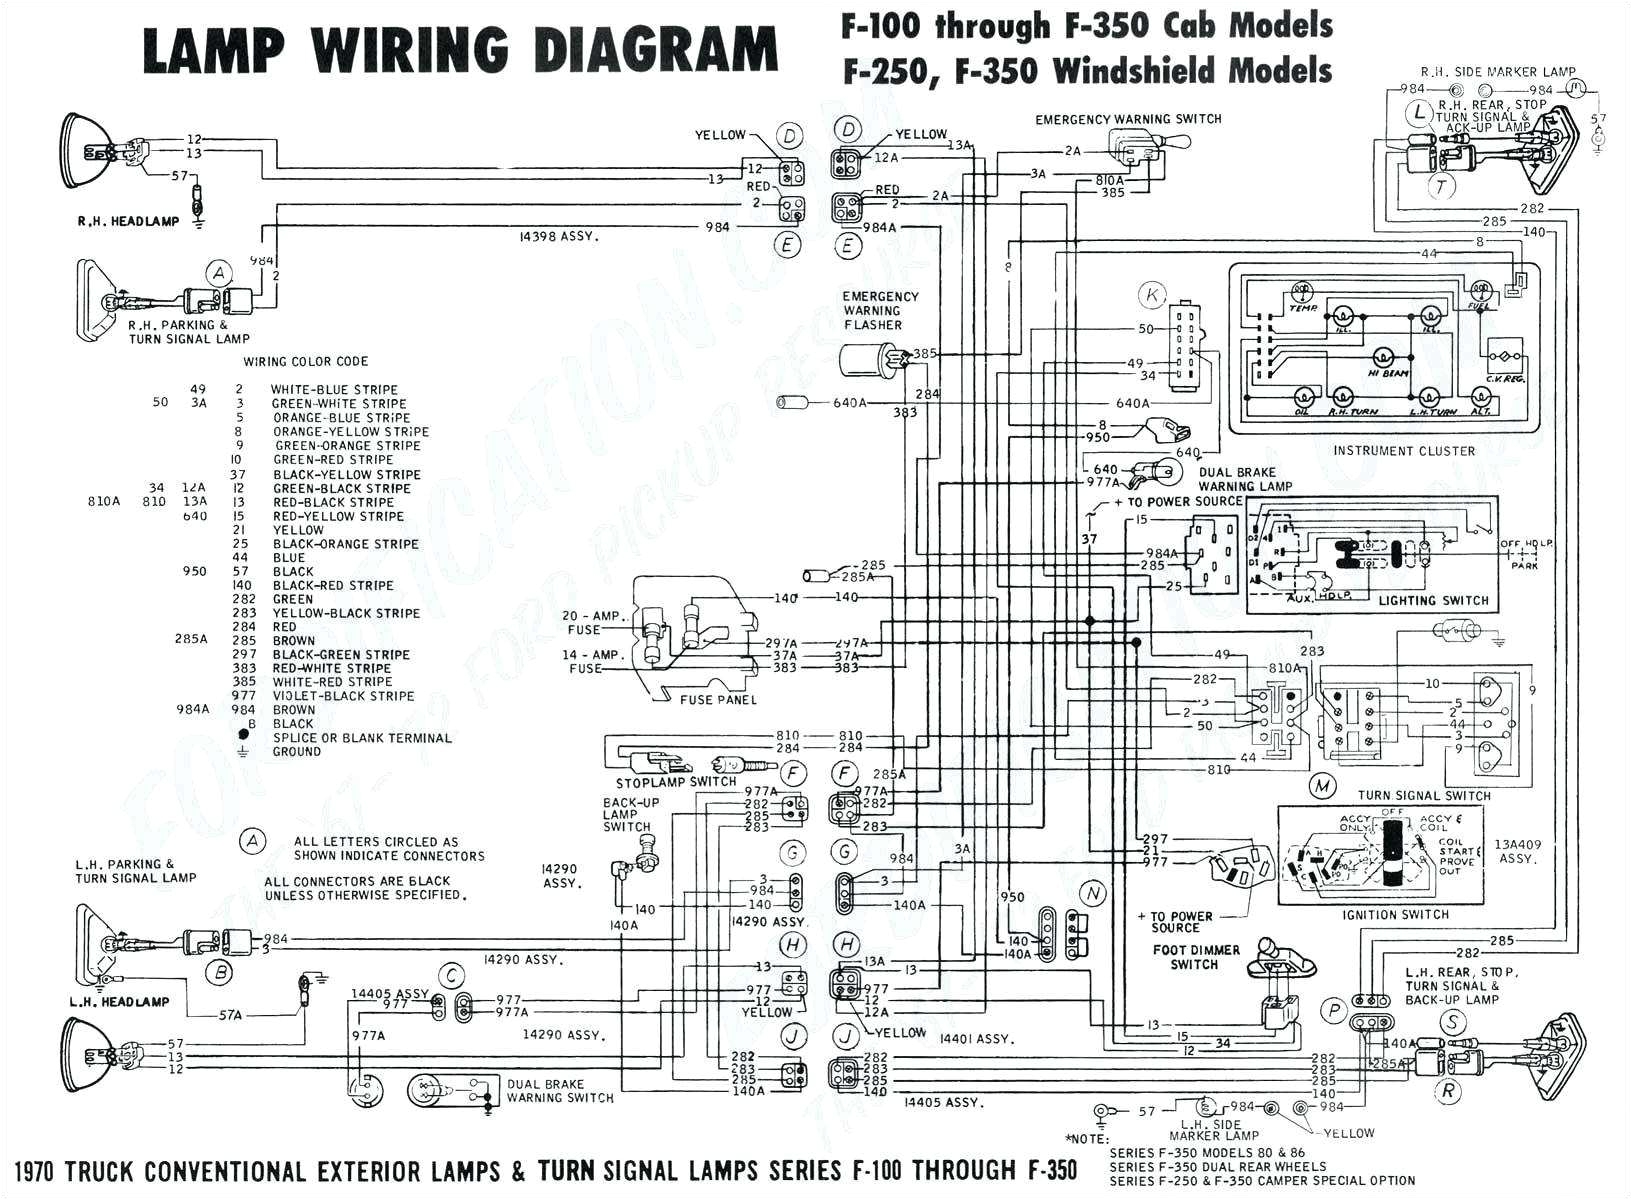 1998 range rover abs pressure control switch wiring diagram wiring wiring diagram 2004 land rover hse get free image about wiring